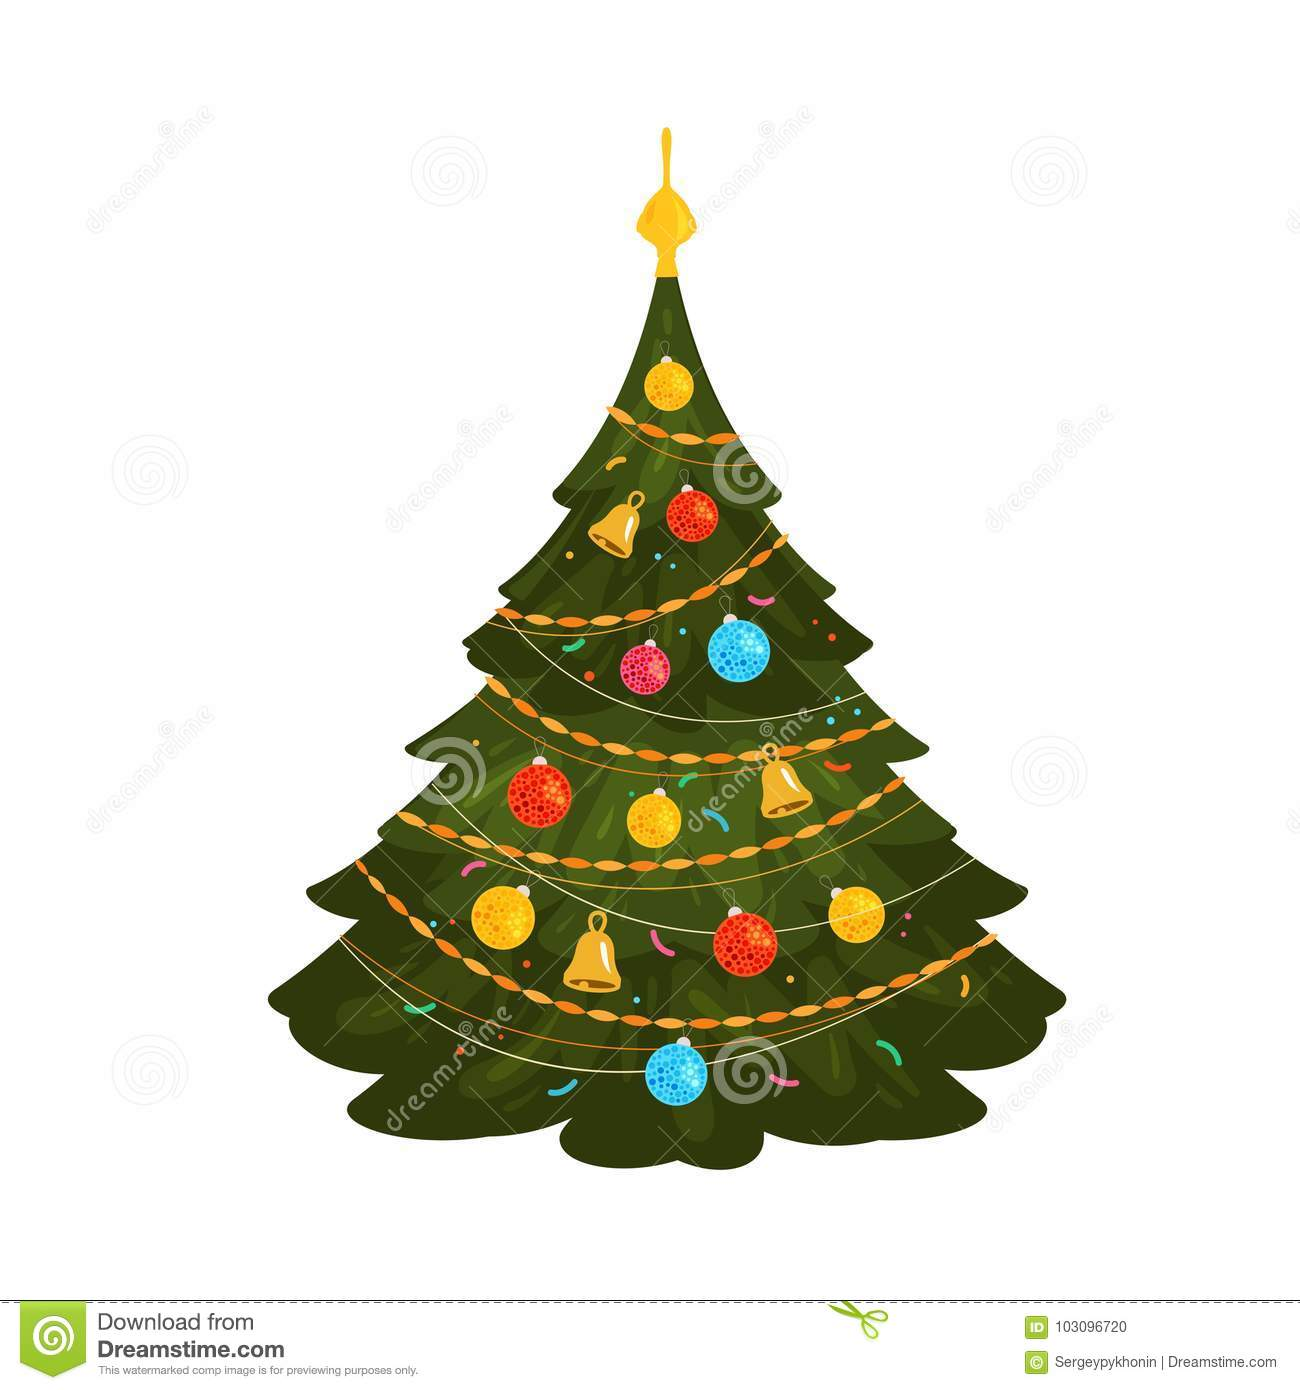 Official Date To Put Up Christmas Trees: Christmas Tree. Xmas Concept Or Symbol. Cartoon Vector